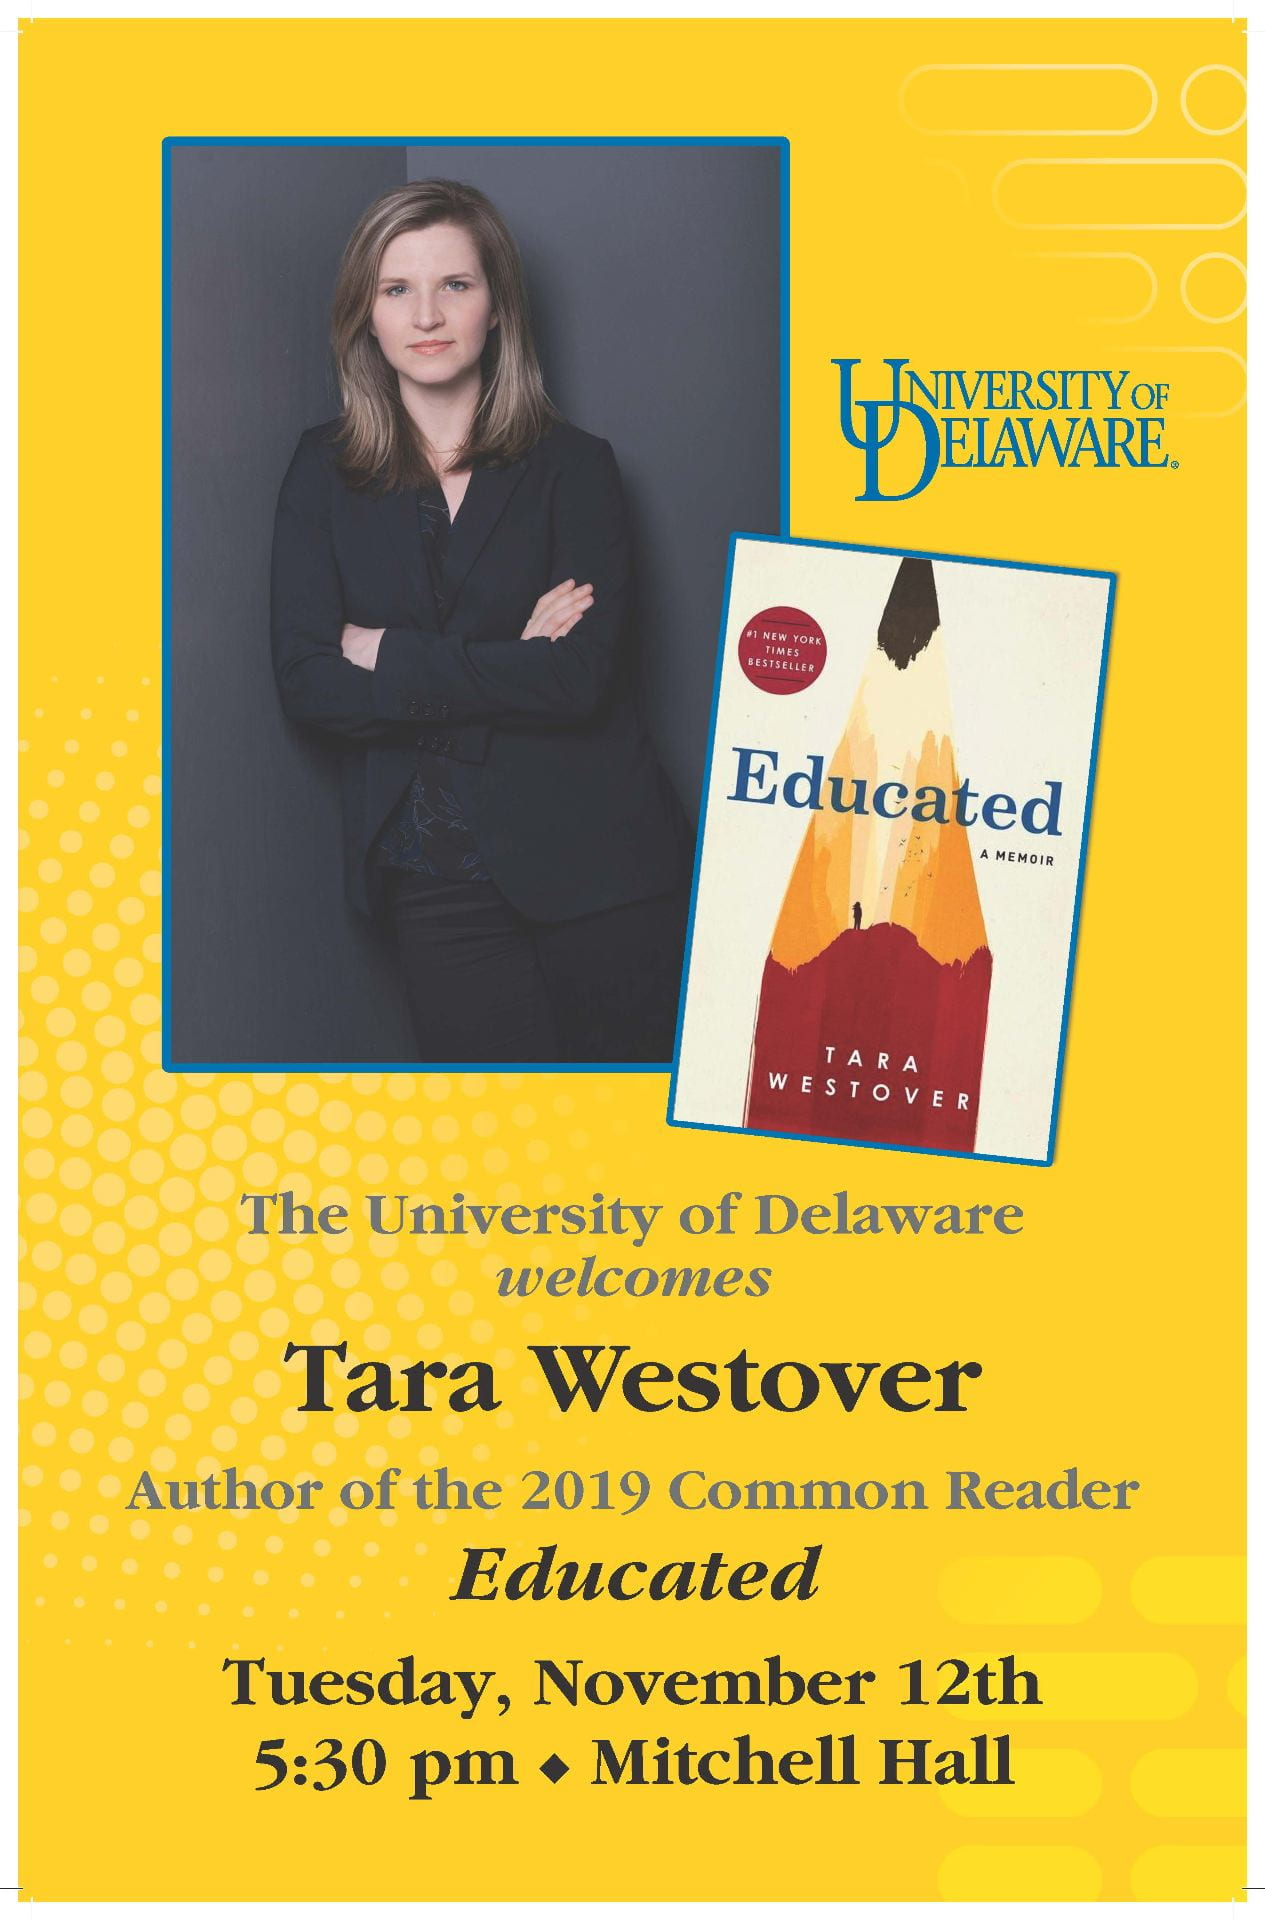 The University of Delaware welcomes Tara Westover, author of the 2019 Common Reader Educated. Tuesday, November 12th, 5:30 PM, Mitchell Hall.